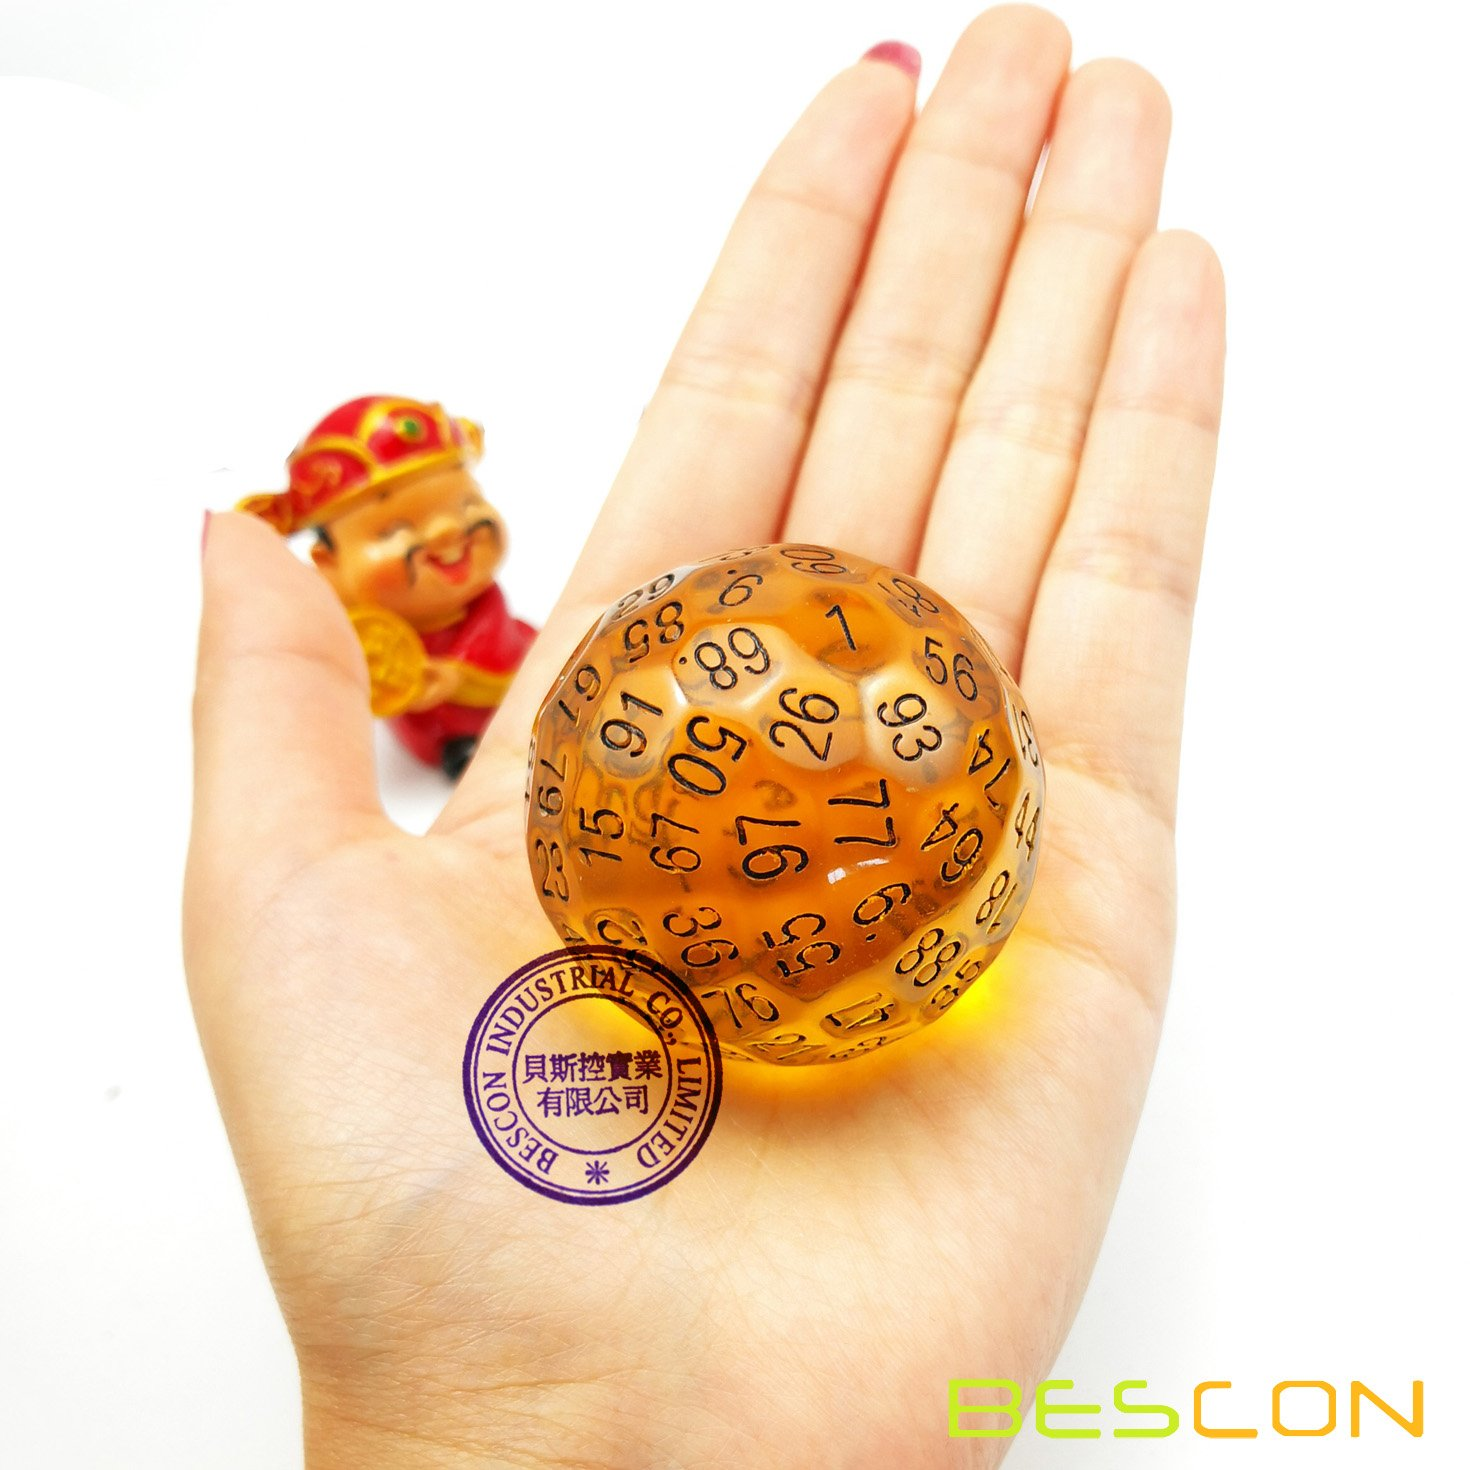 Bescon Translucent Polyhedral Dice 100 Sides Dice 100 Sided Cube D100 Game  Dice Transparent D100 die 100-Sided Cube of Amber